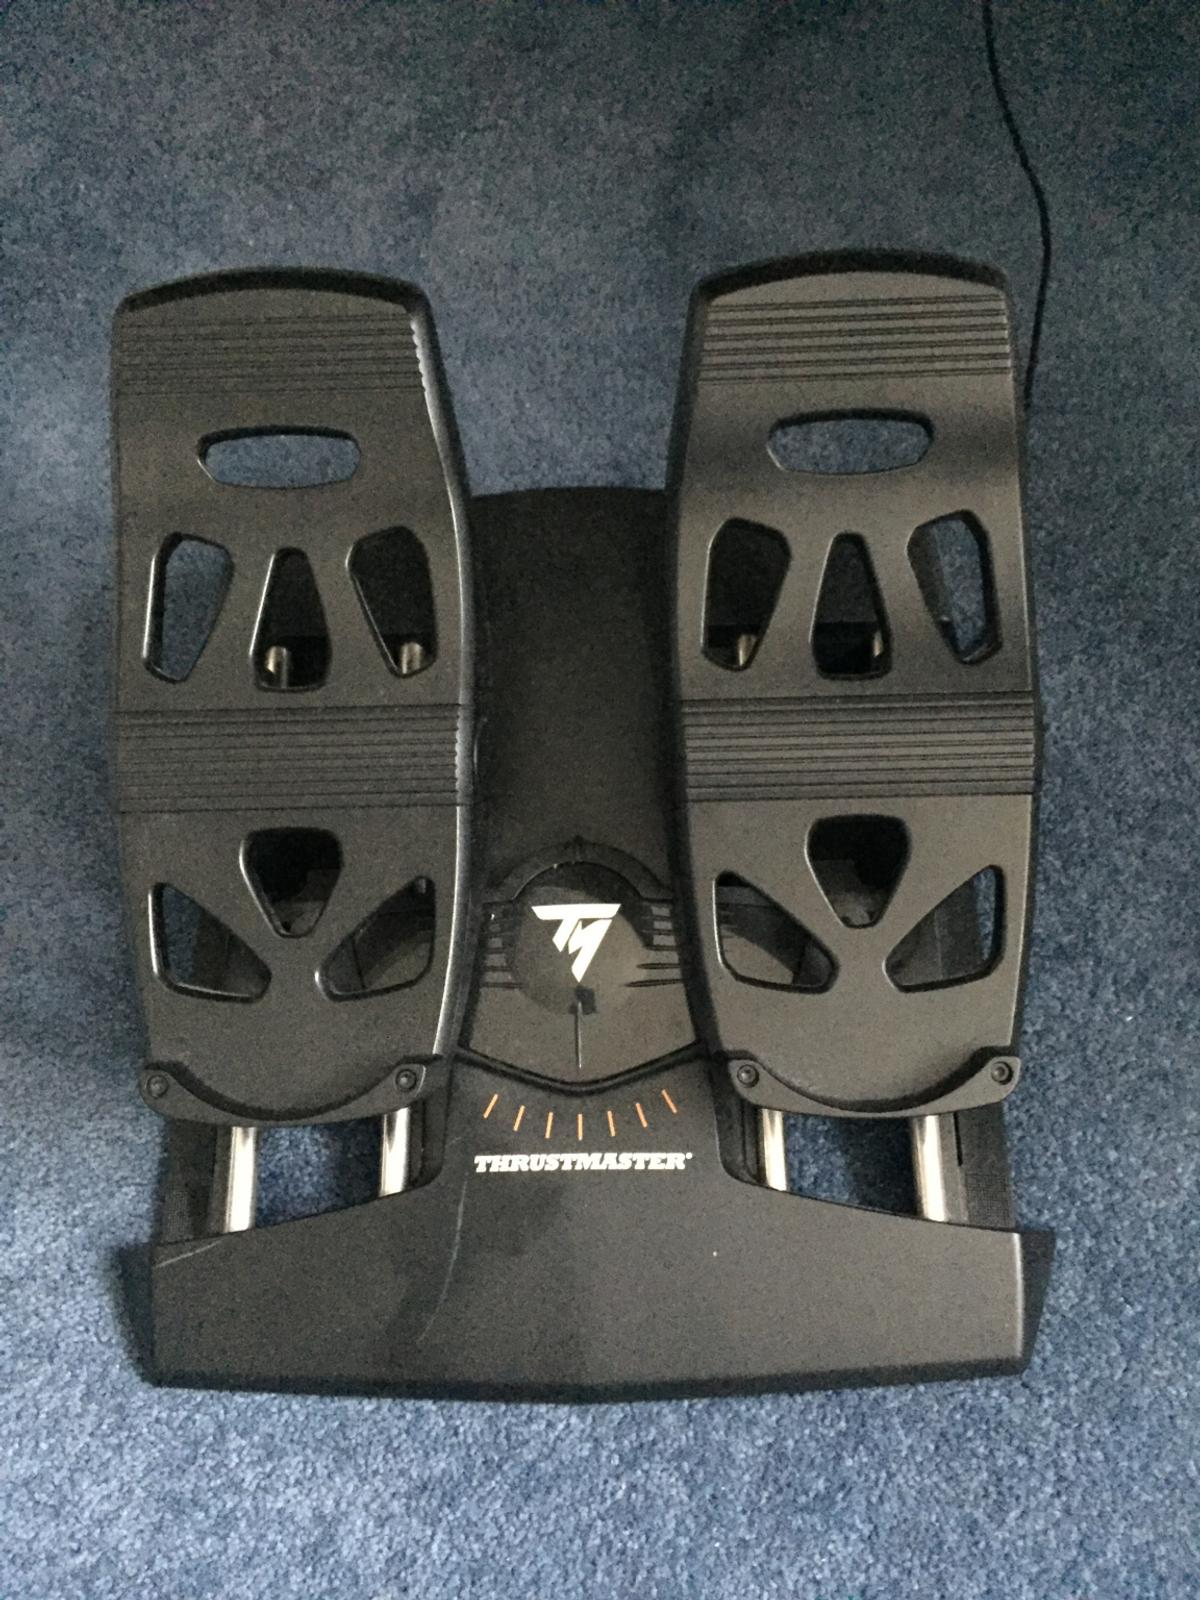 Thrustmaster T-Flight Rudder Pedals in DY8 Dudley for £55 00